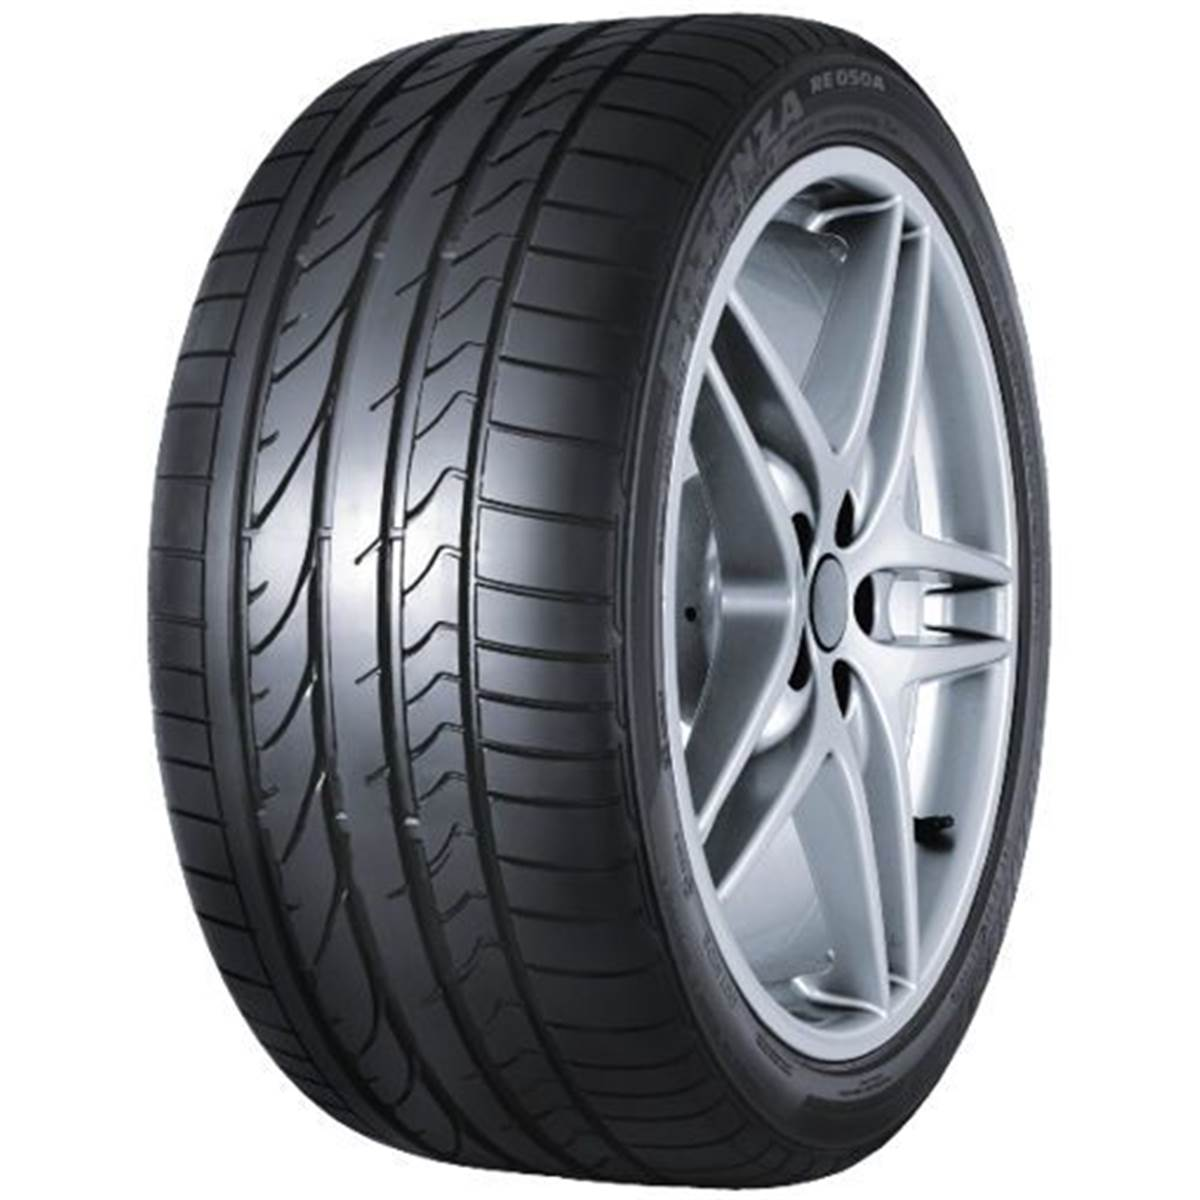 Pneu Bridgestone 255/35R19 96Y Potenza Re050A XL